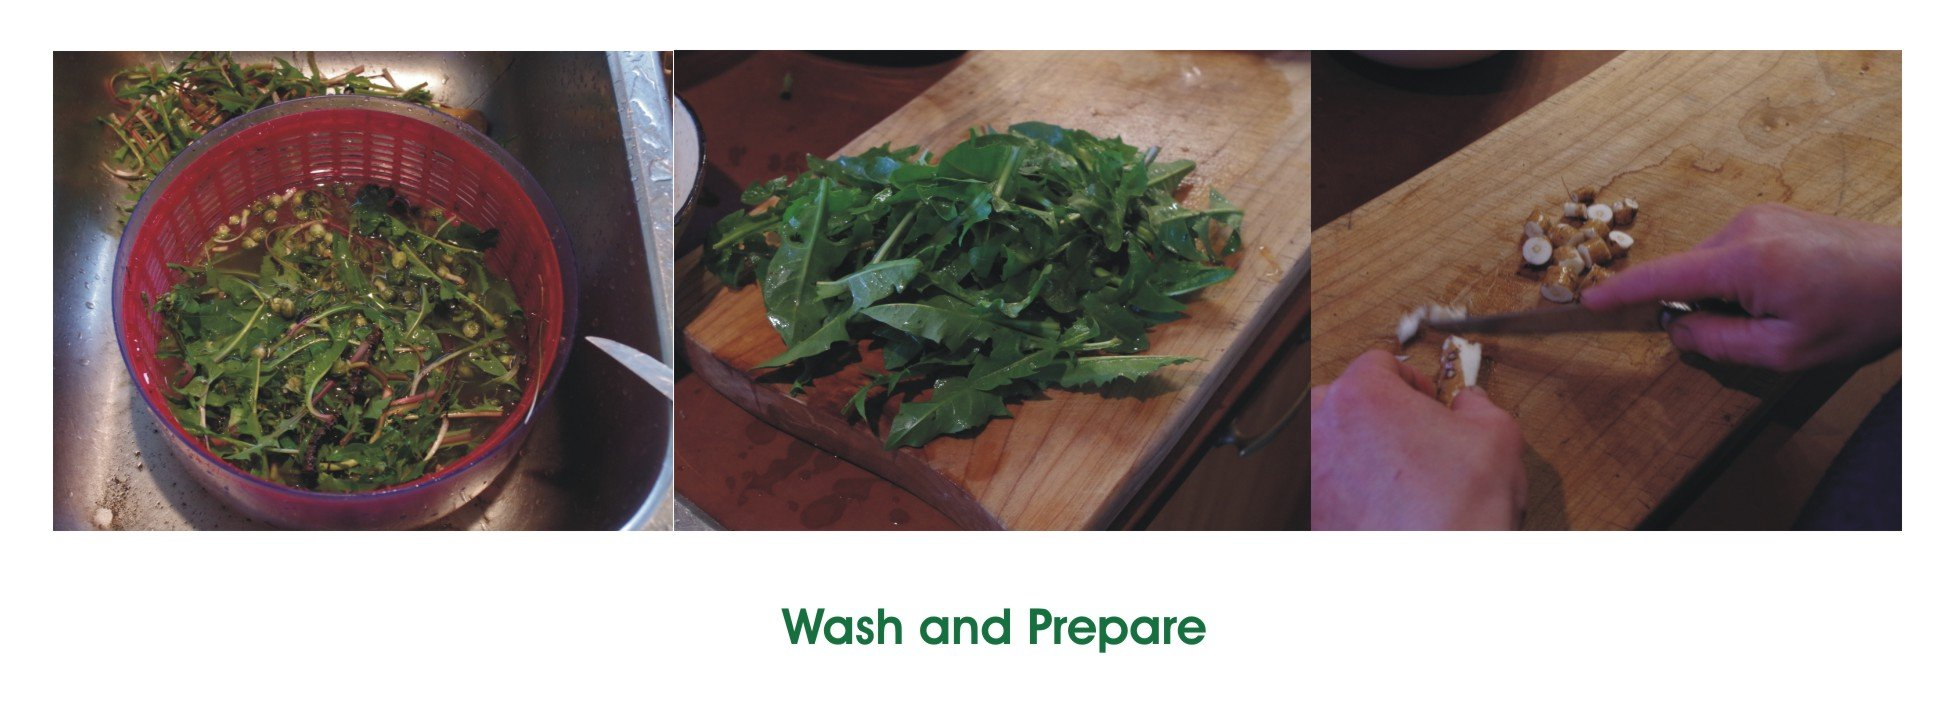 Wash and Prepare Dandelions May 2019